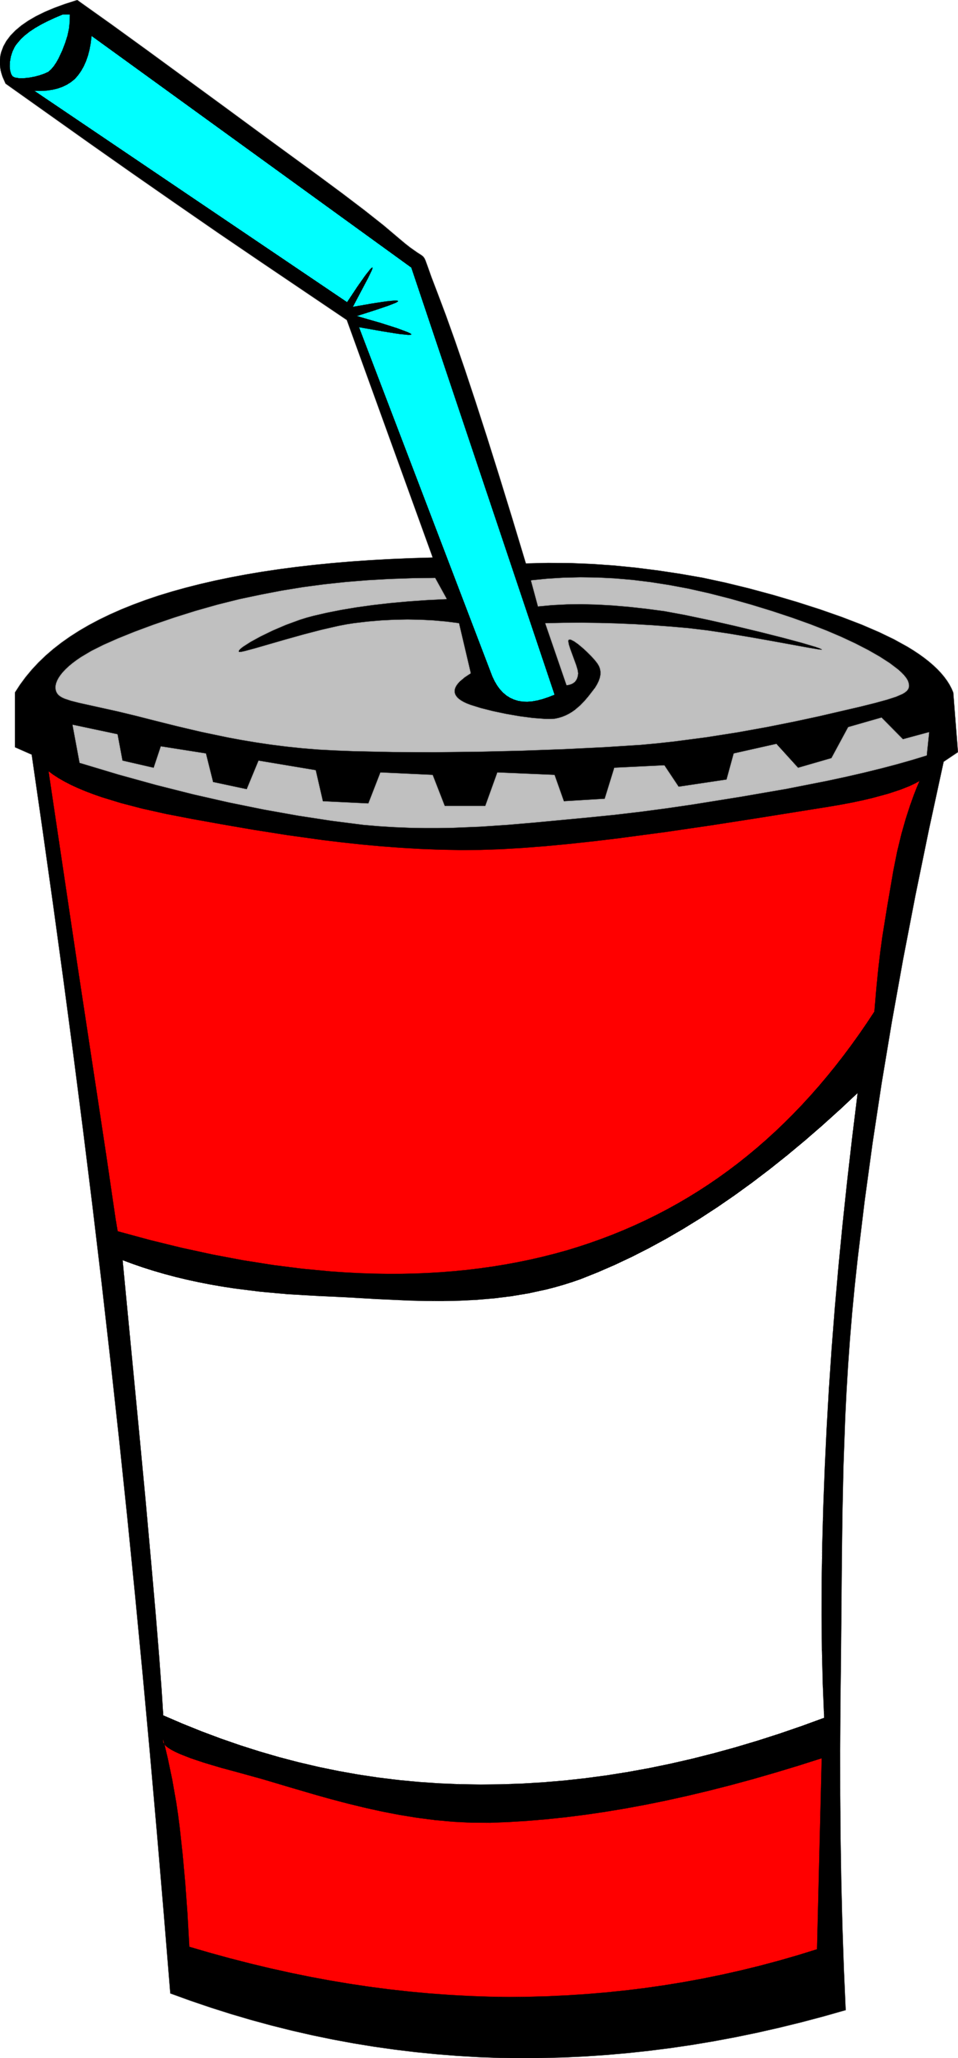 Fast food cup png. Public domain clip art